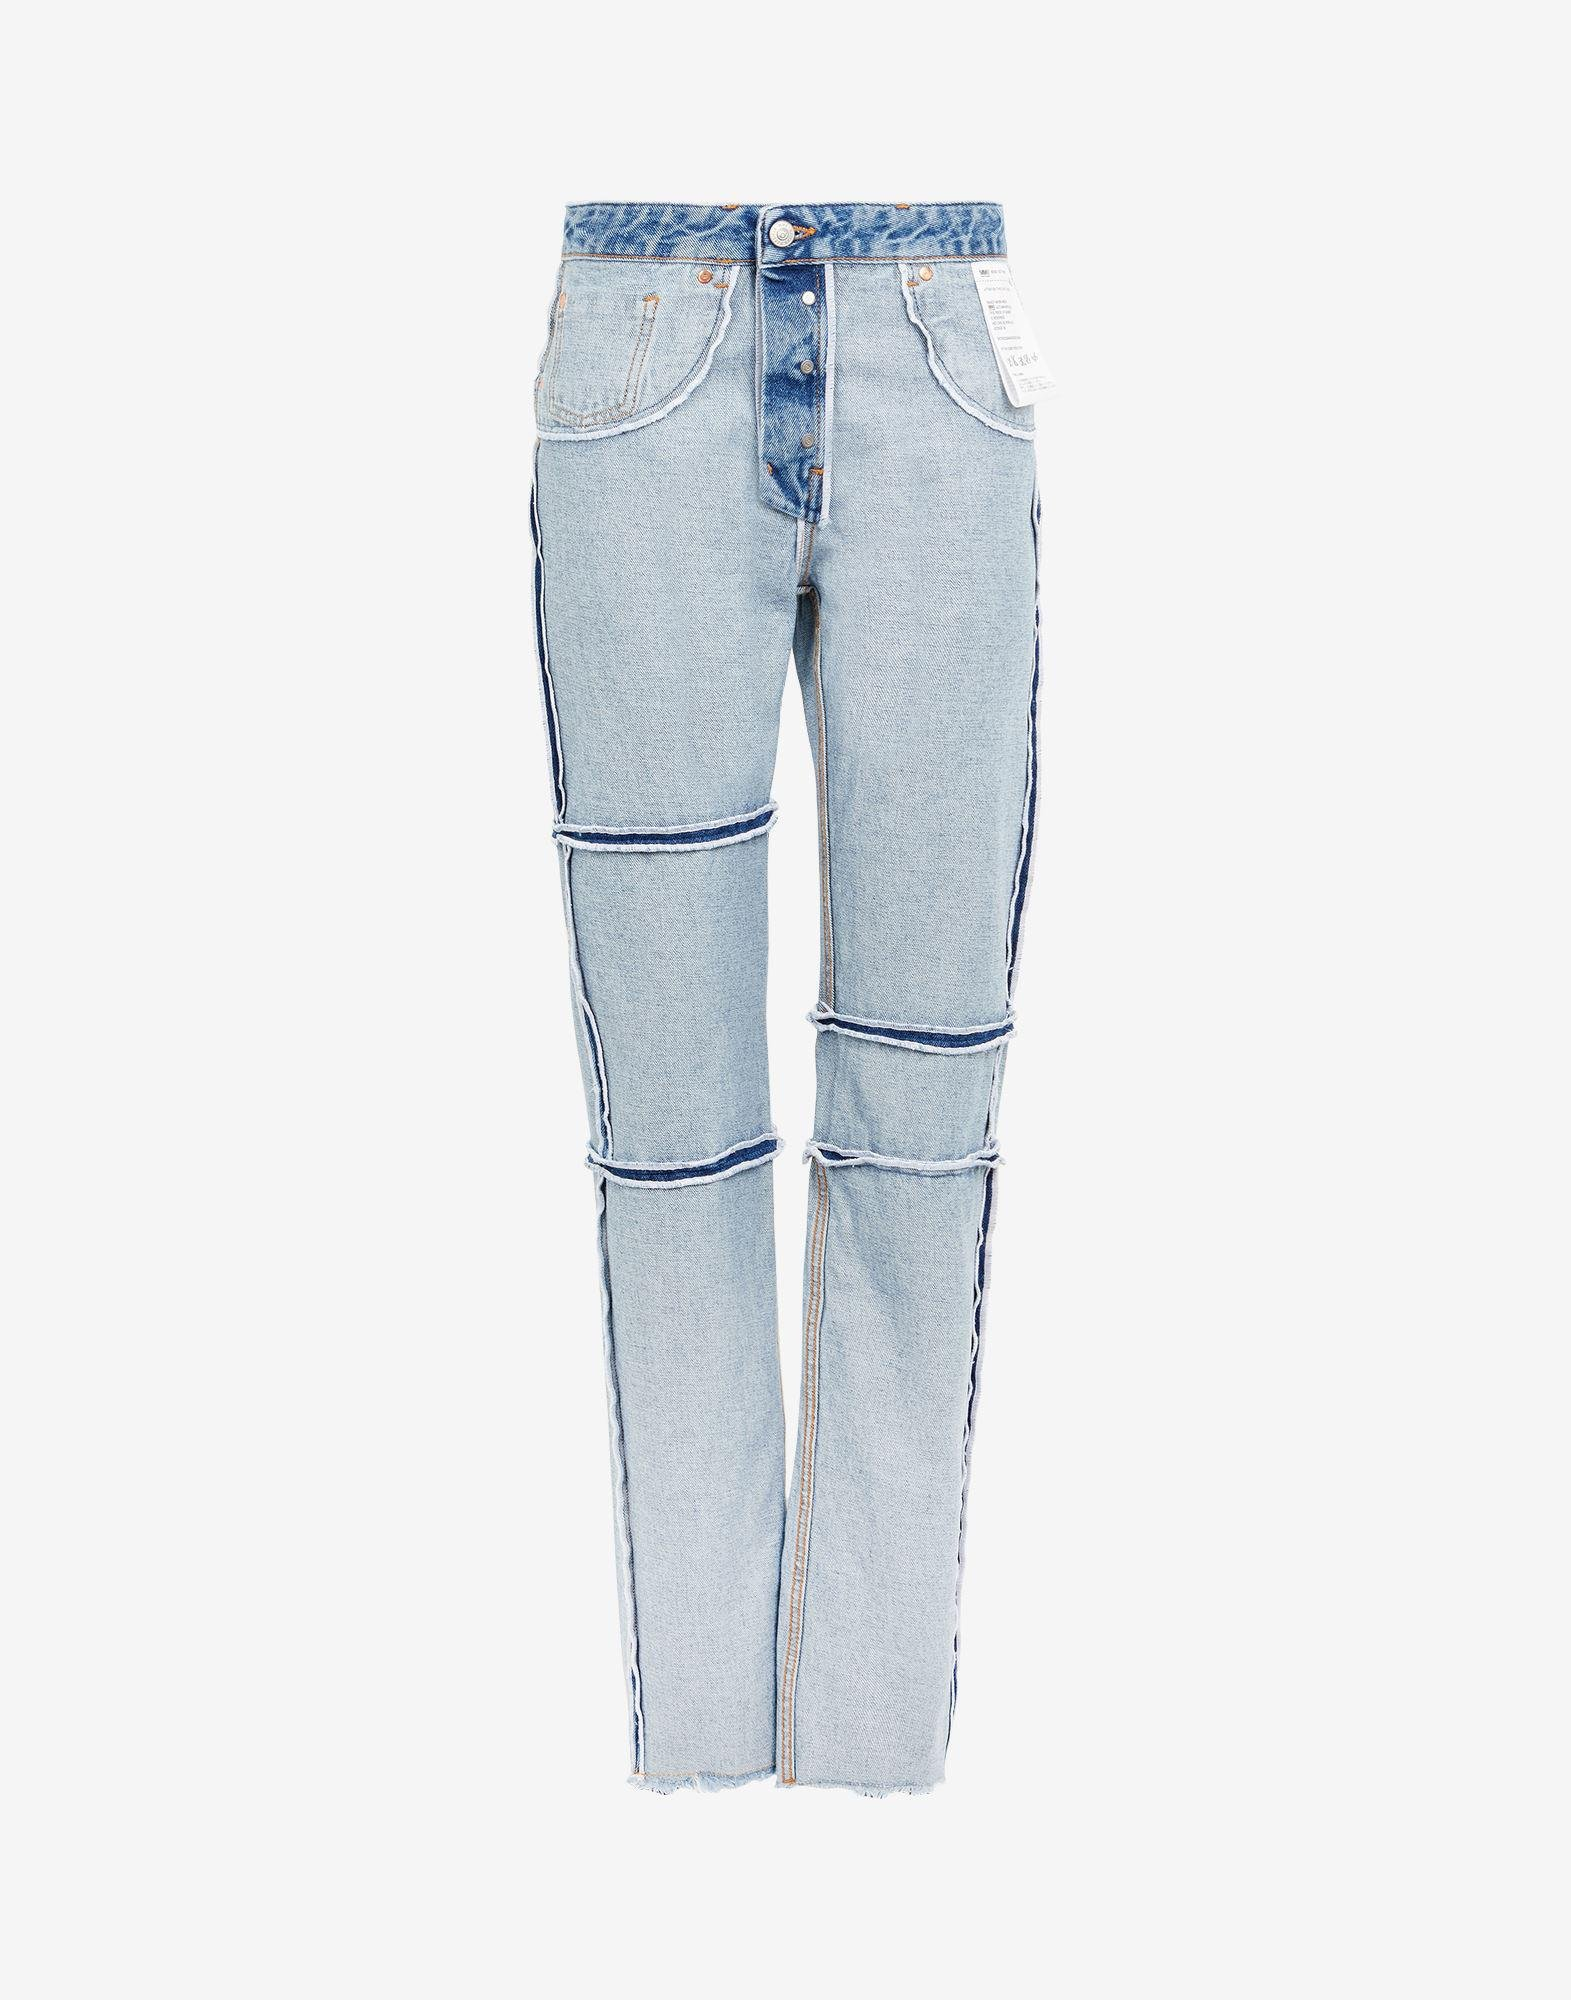 Inside out panelled jeans